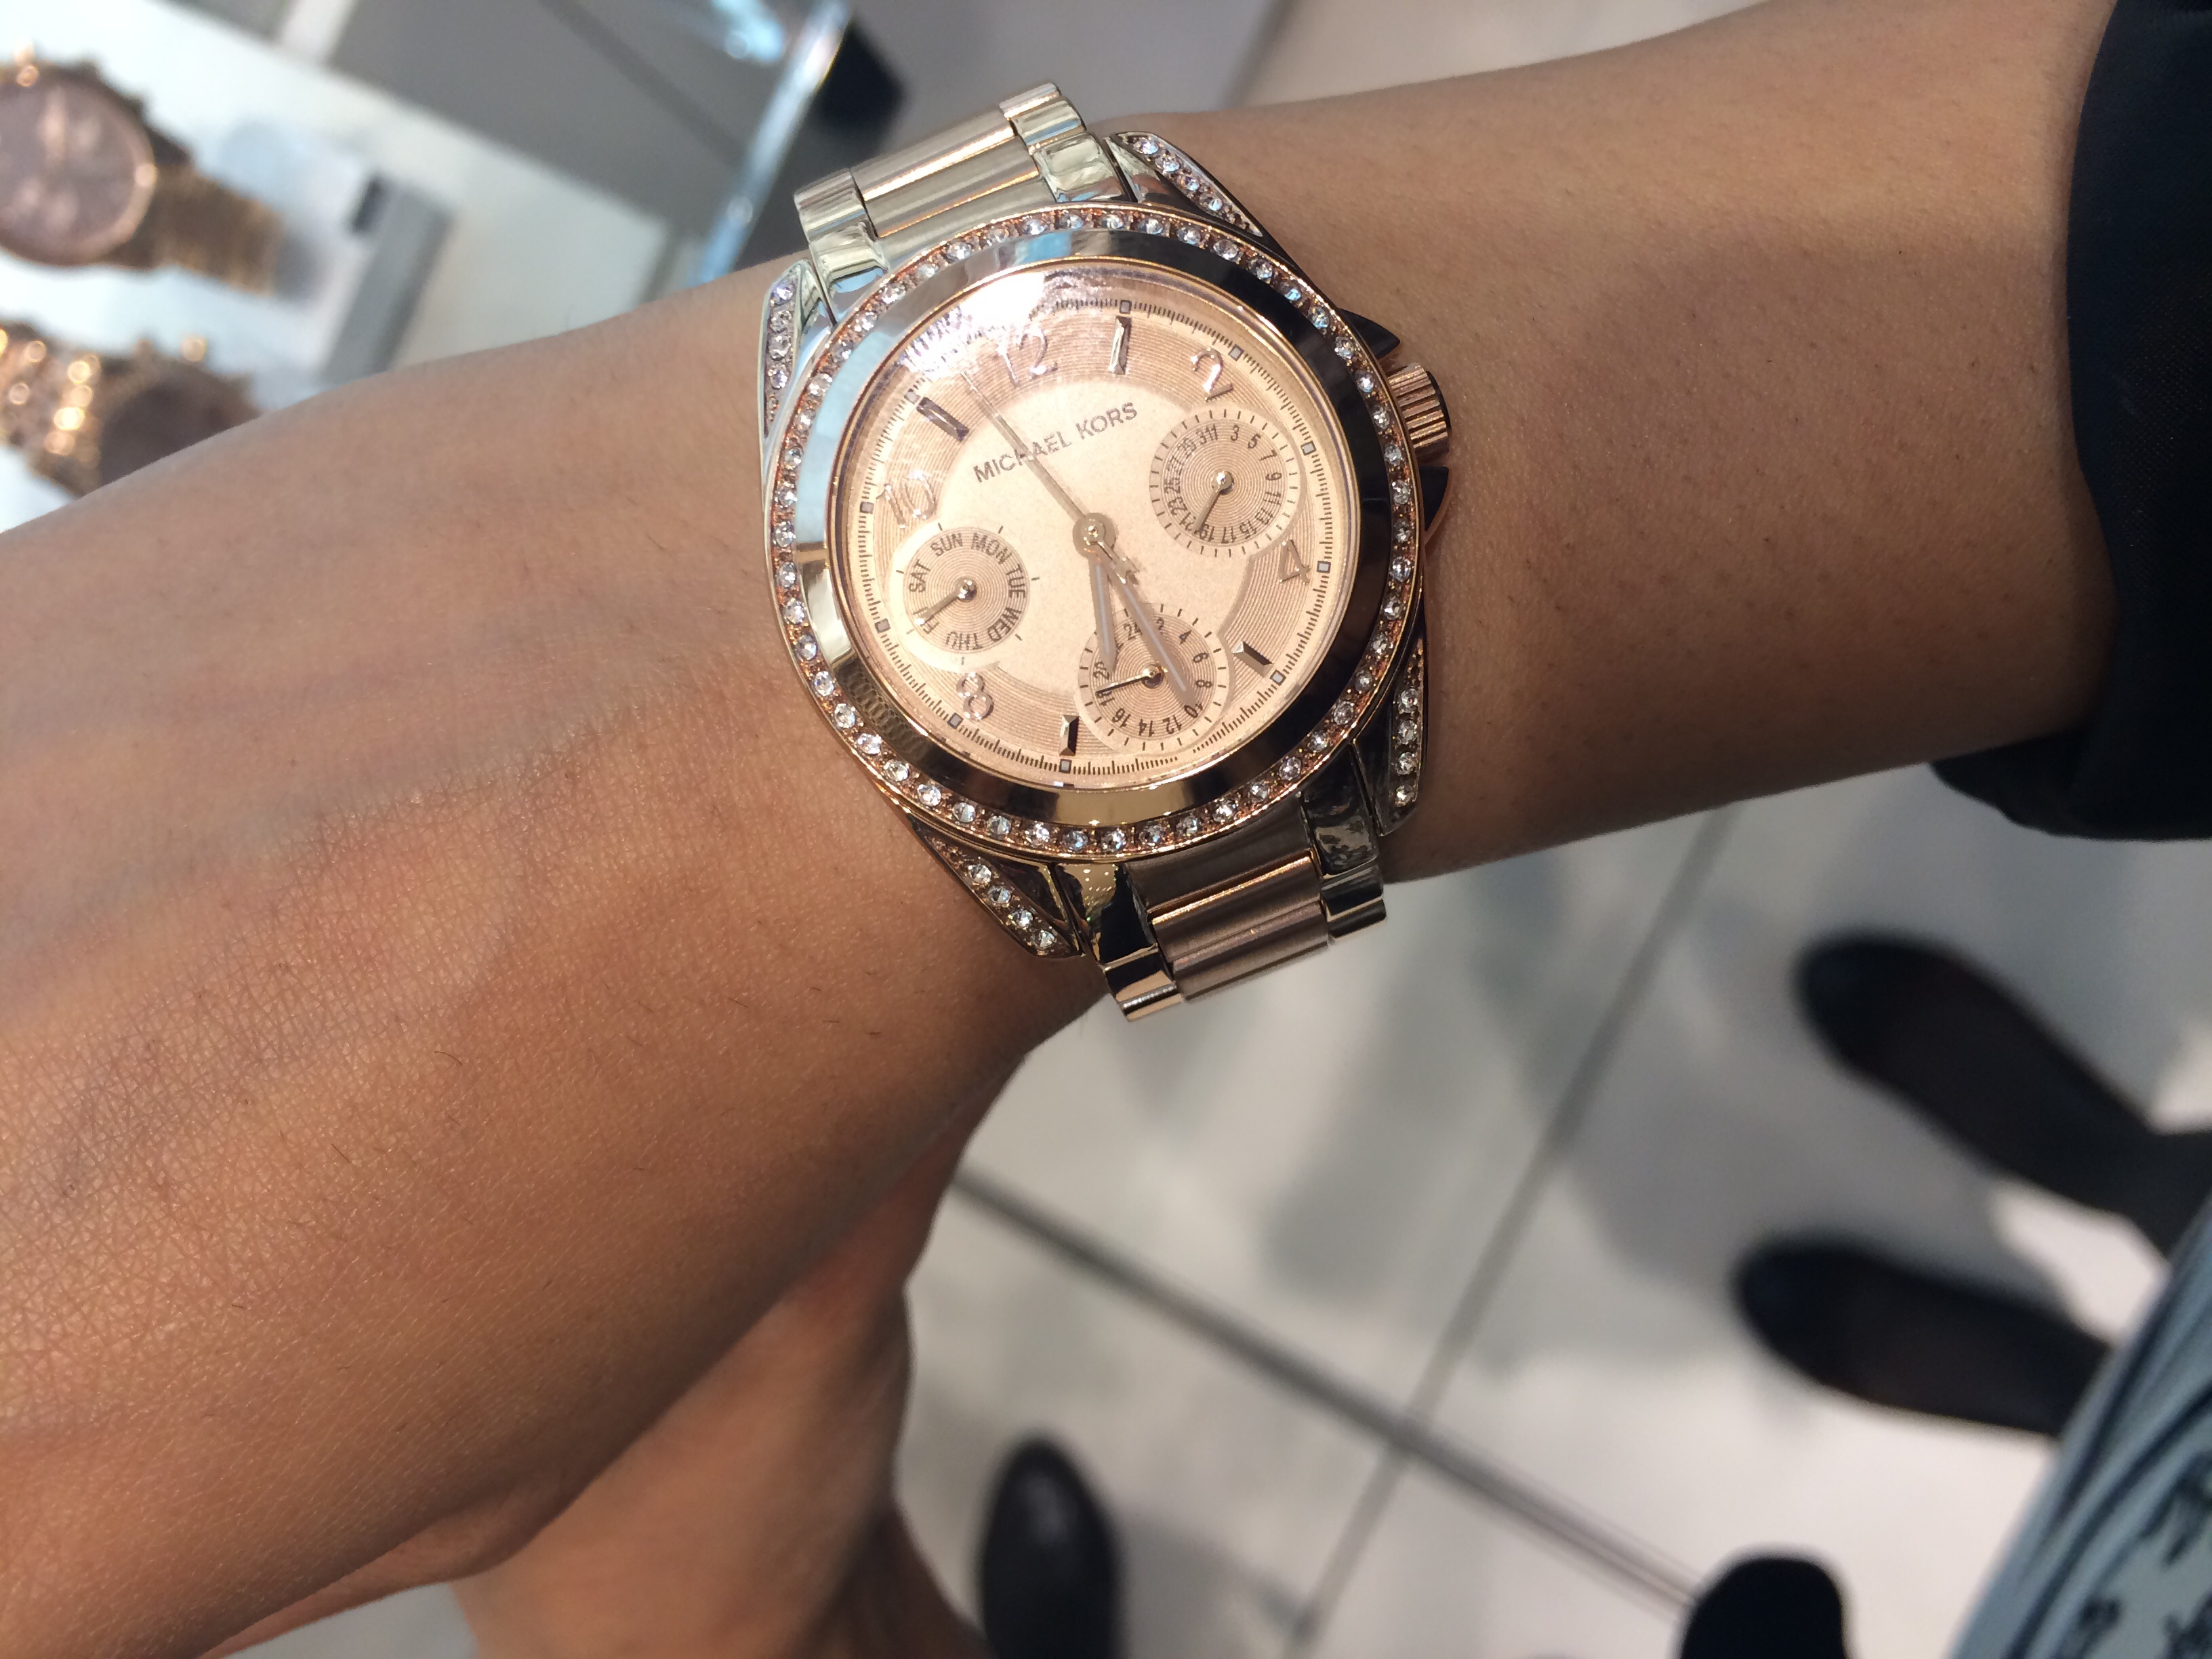 66c5c99c4956 This was an amazing buy ...... I went to house of Fraser to try it on and  looked lovely on me ....... My wrists are so tiny anyway so this mini dial  watch ...